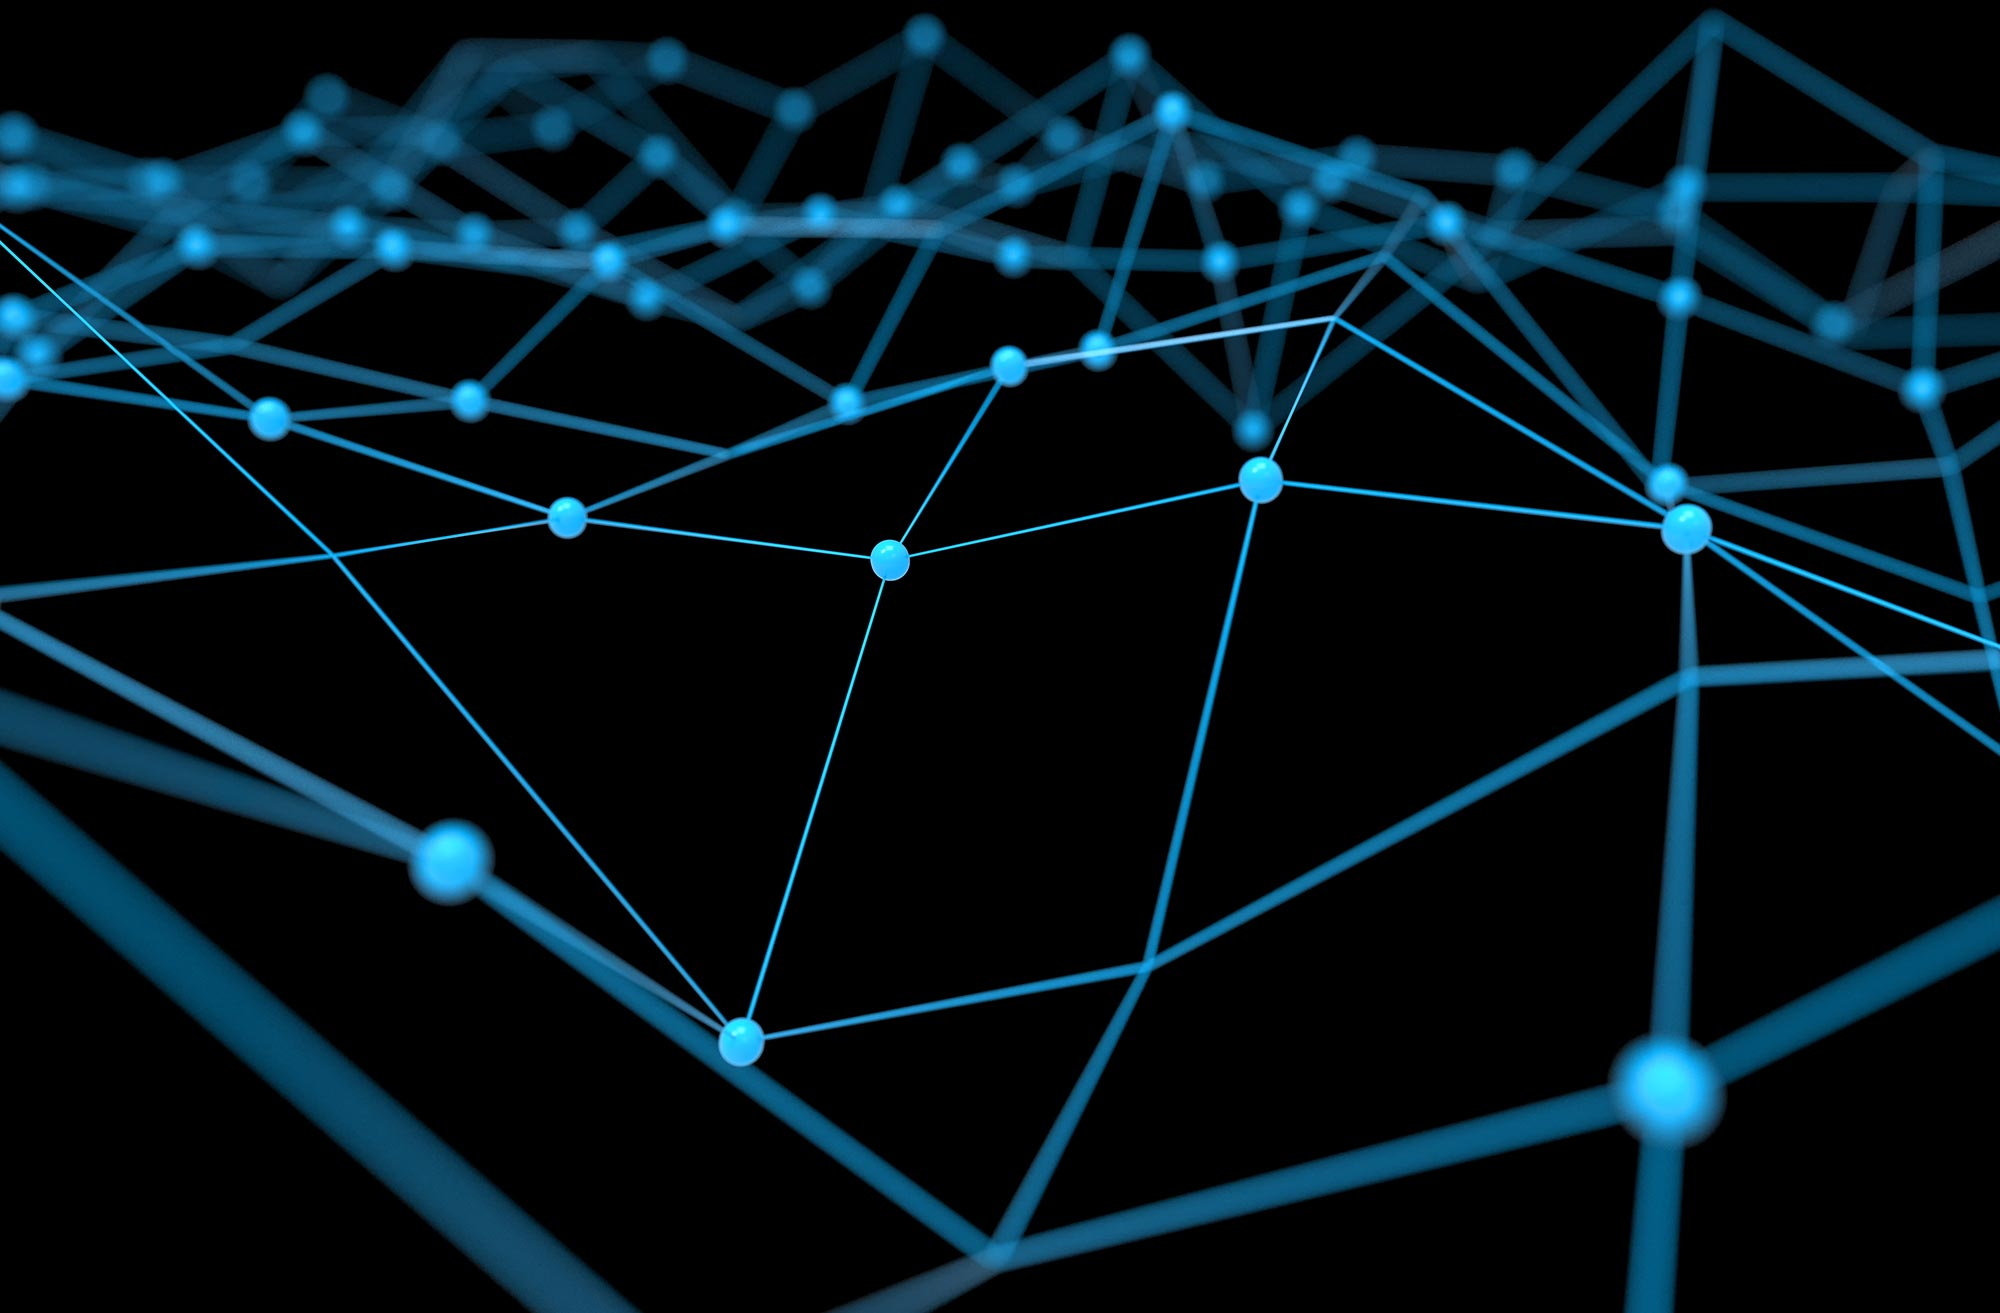 abstract-network-nodes-connections-concept.jpg